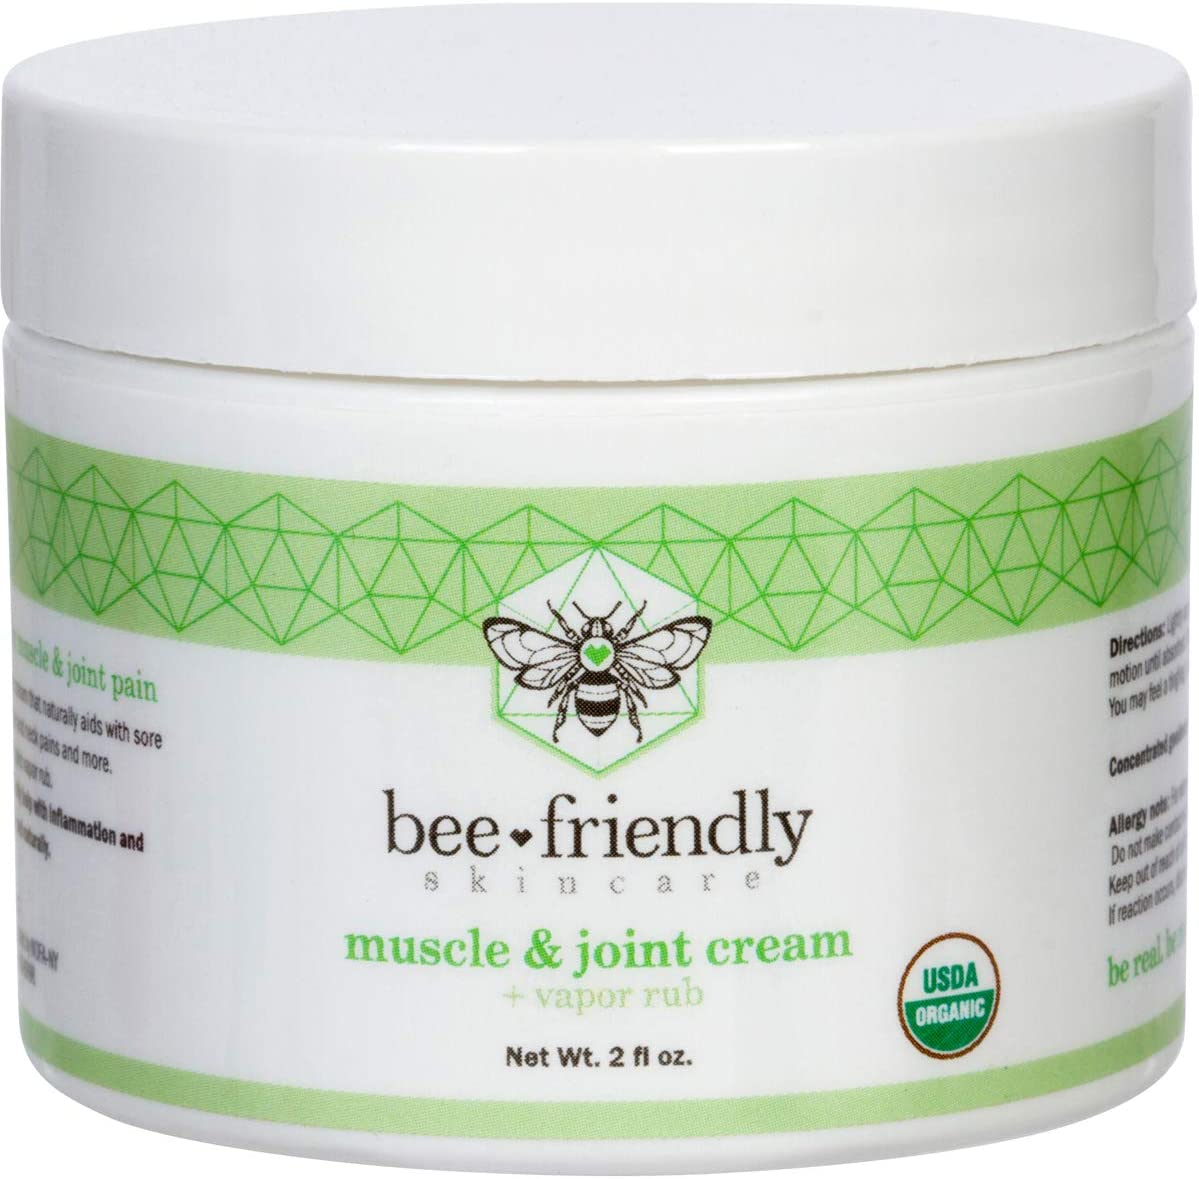 Muscle & Joint Cream, USDA Certified Organic Anti Inflammatory Topical Analgesic & Vapor Rub for Natural Pain Relief with Back, Neck, Knee, Foot, Arthritis, Soreness & Cramps by BeeFriendly 2 oz